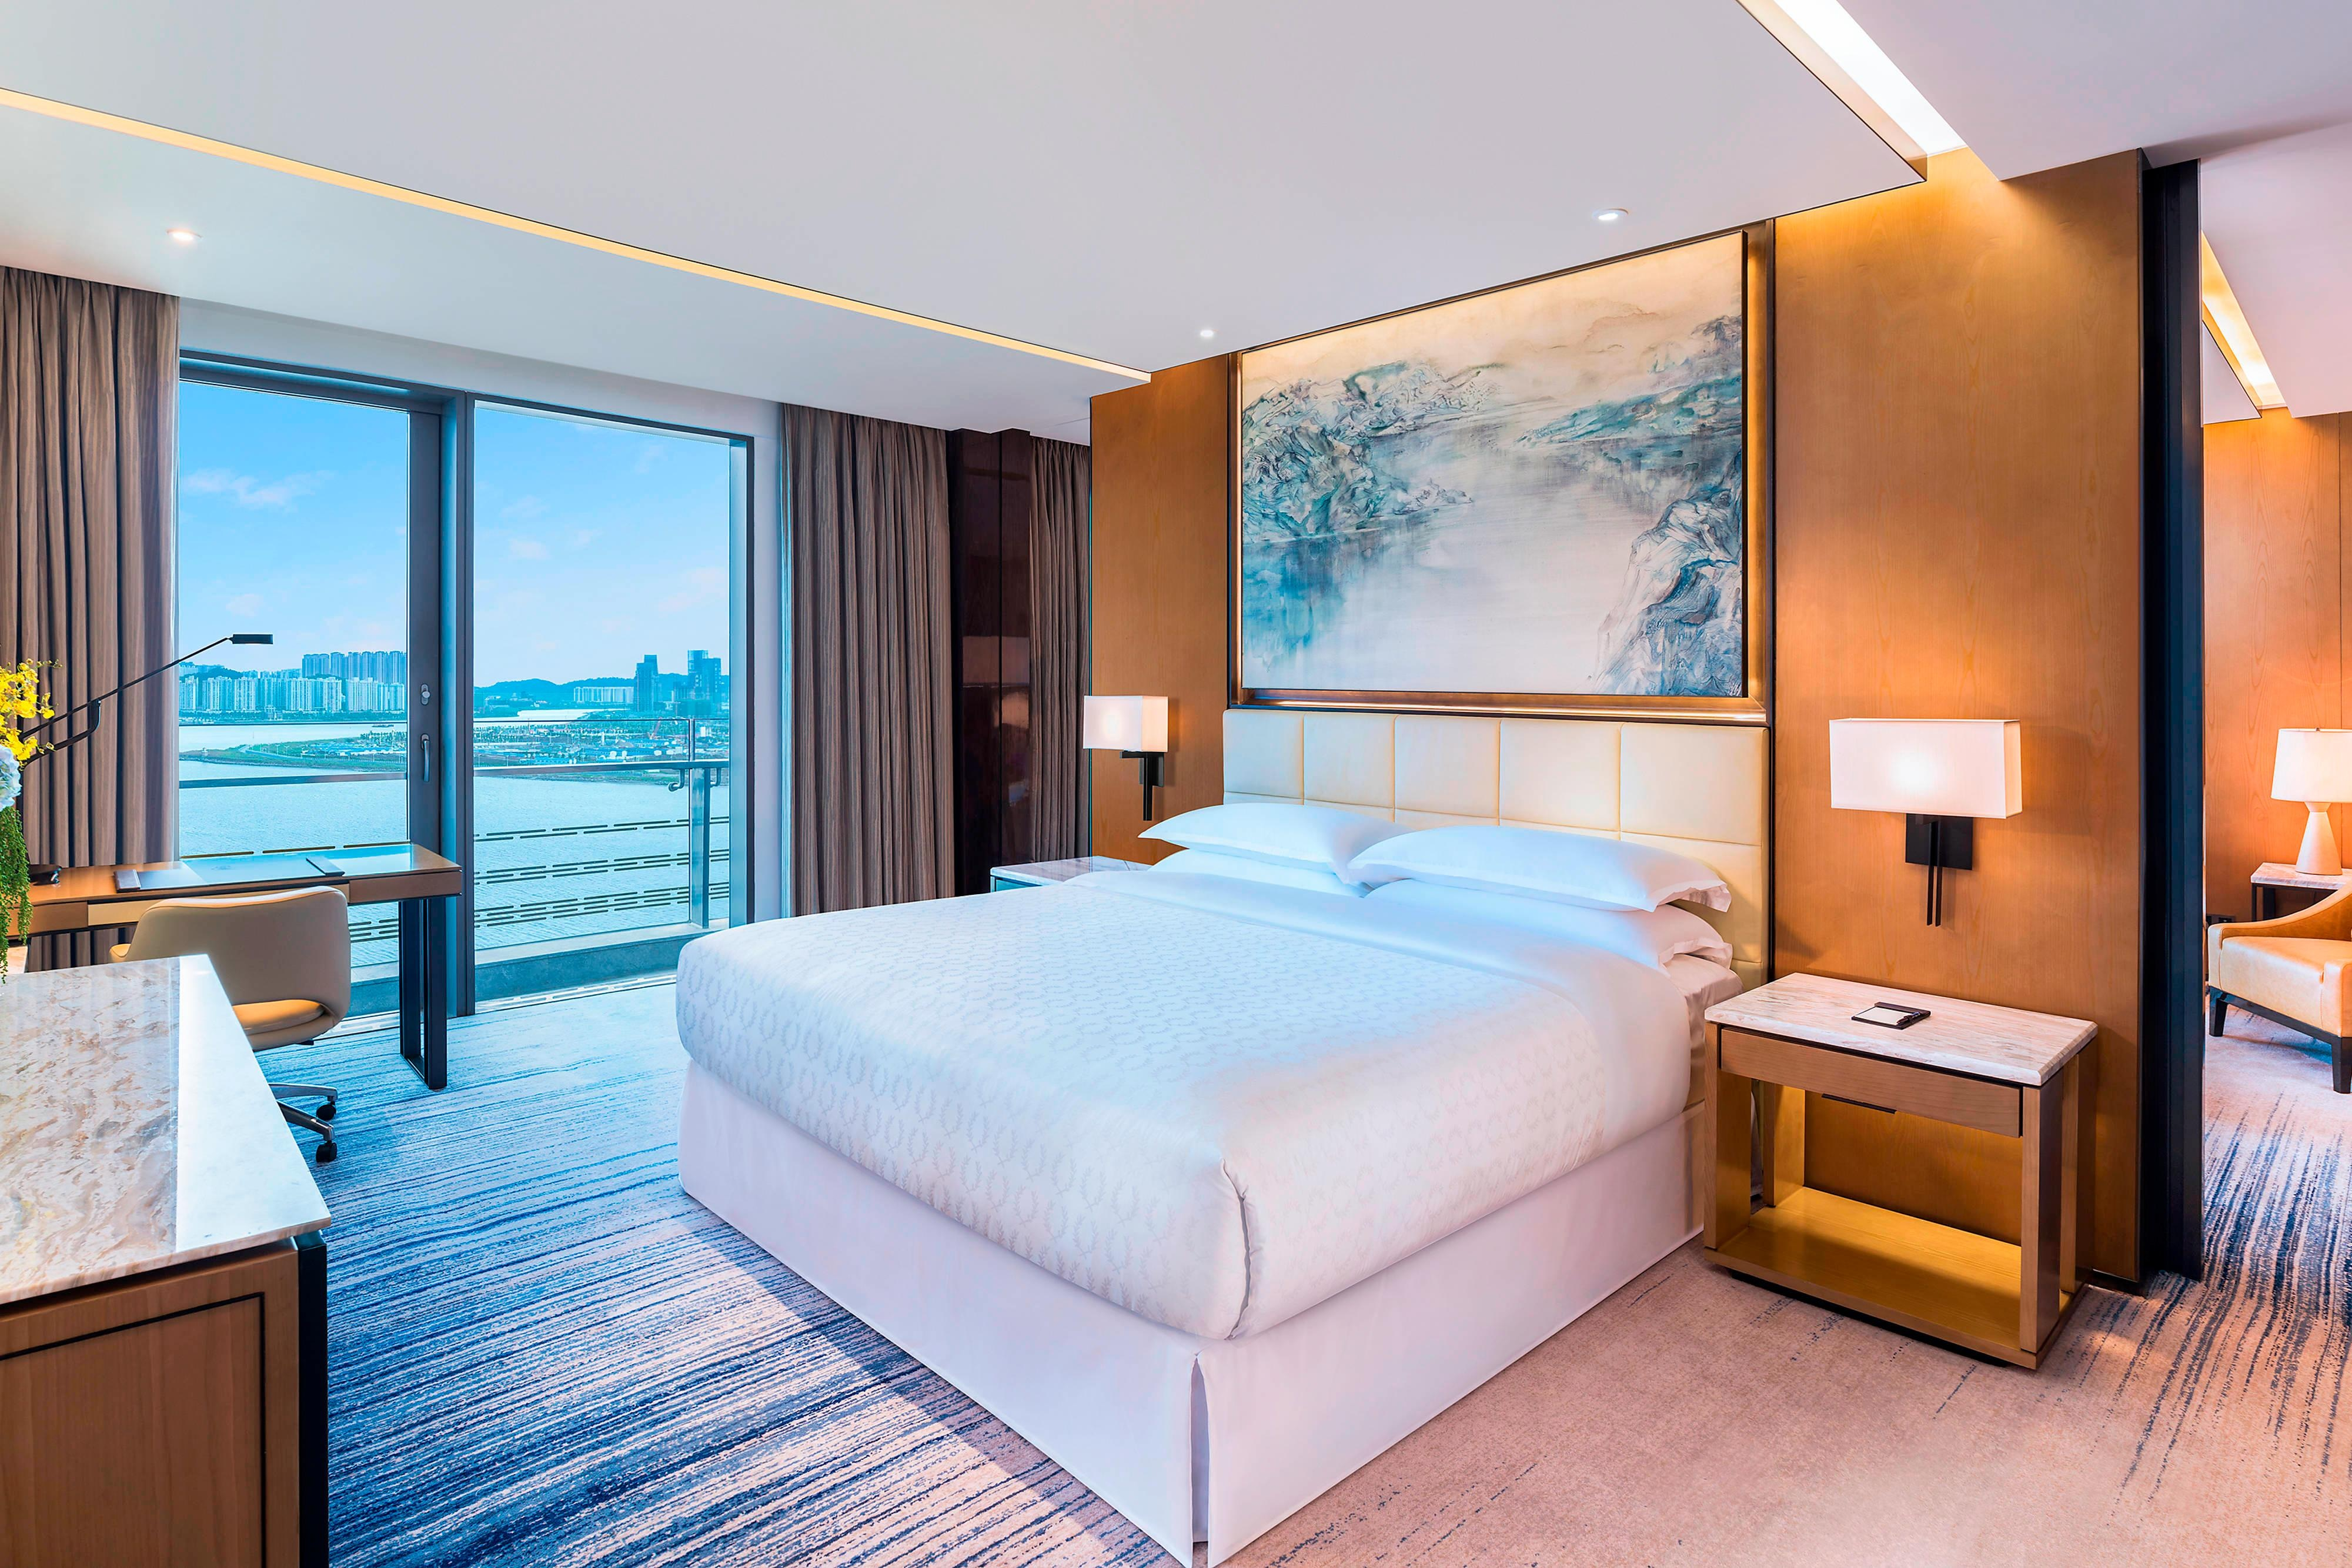 Suite con vistas al mar - Dormitorio